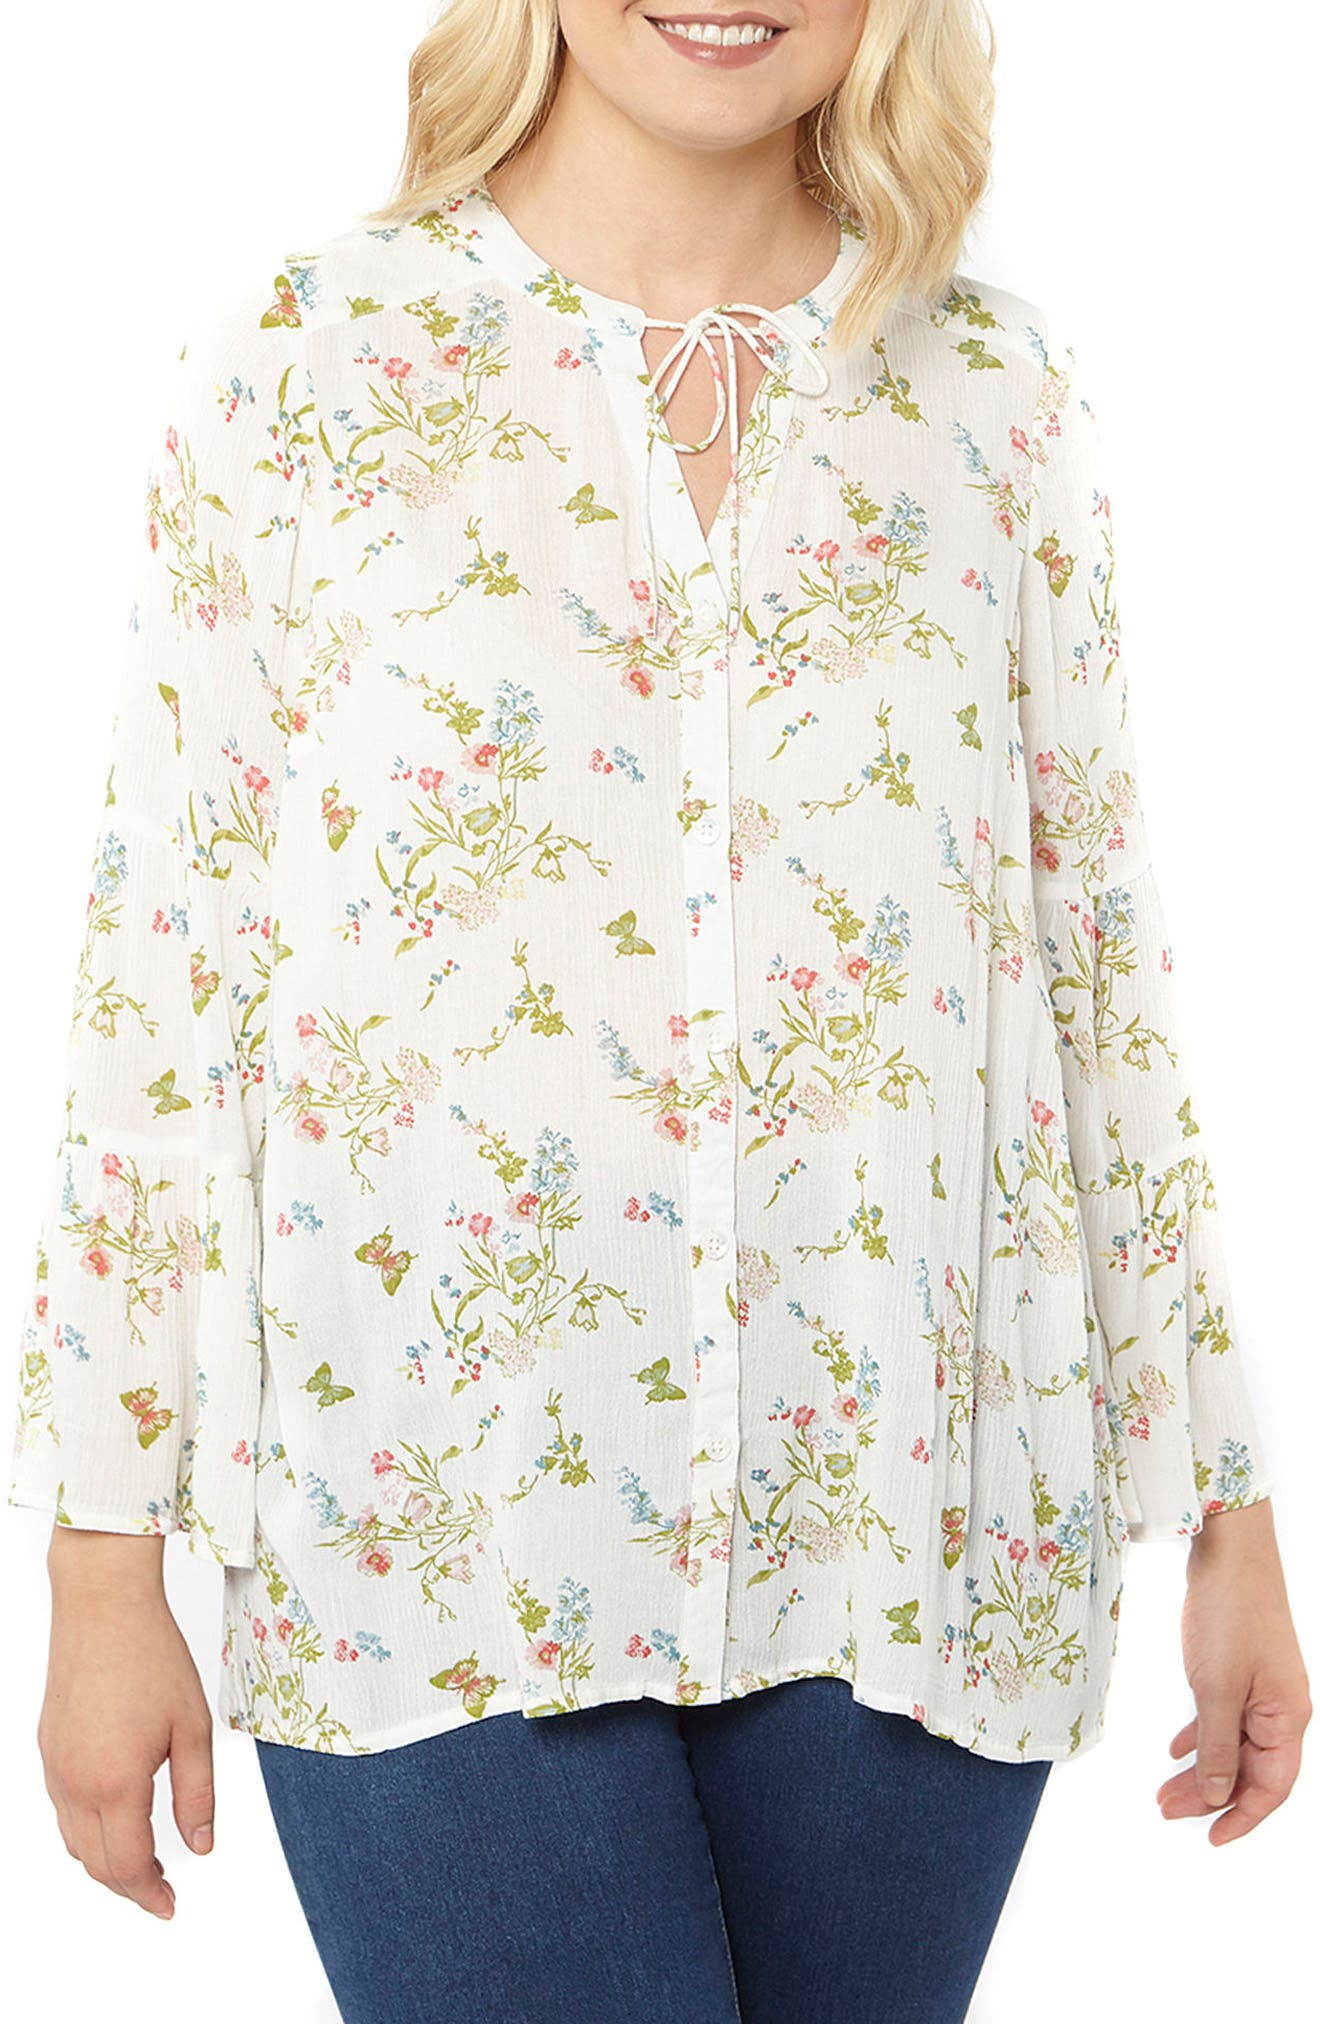 Alternate Image 1 Selected - Evans Bell Sleeve Floral Blouse (Plus Size)